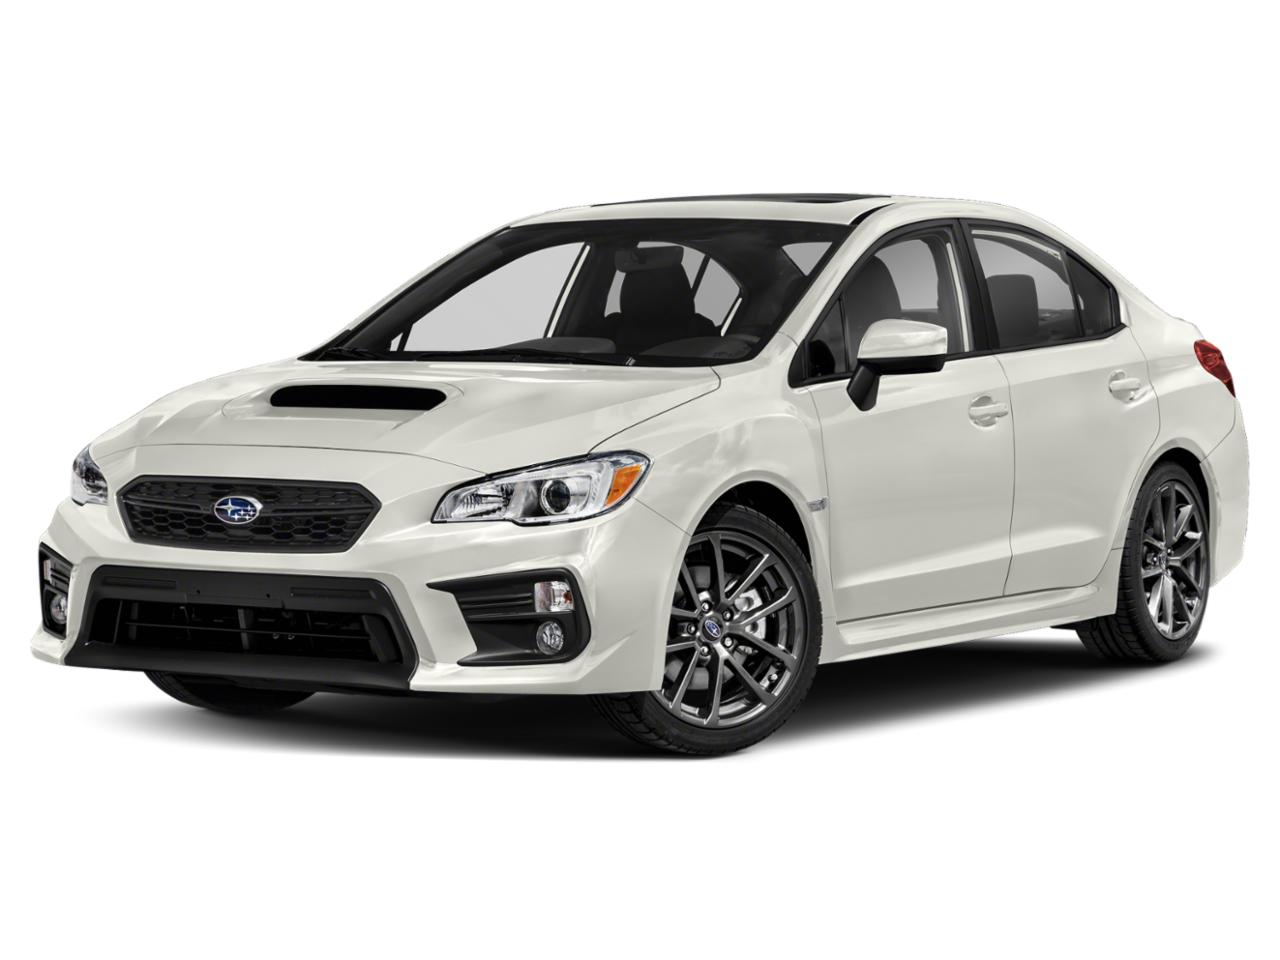 2019 Subaru WRX Vehicle Photo in Casper, WY 82609